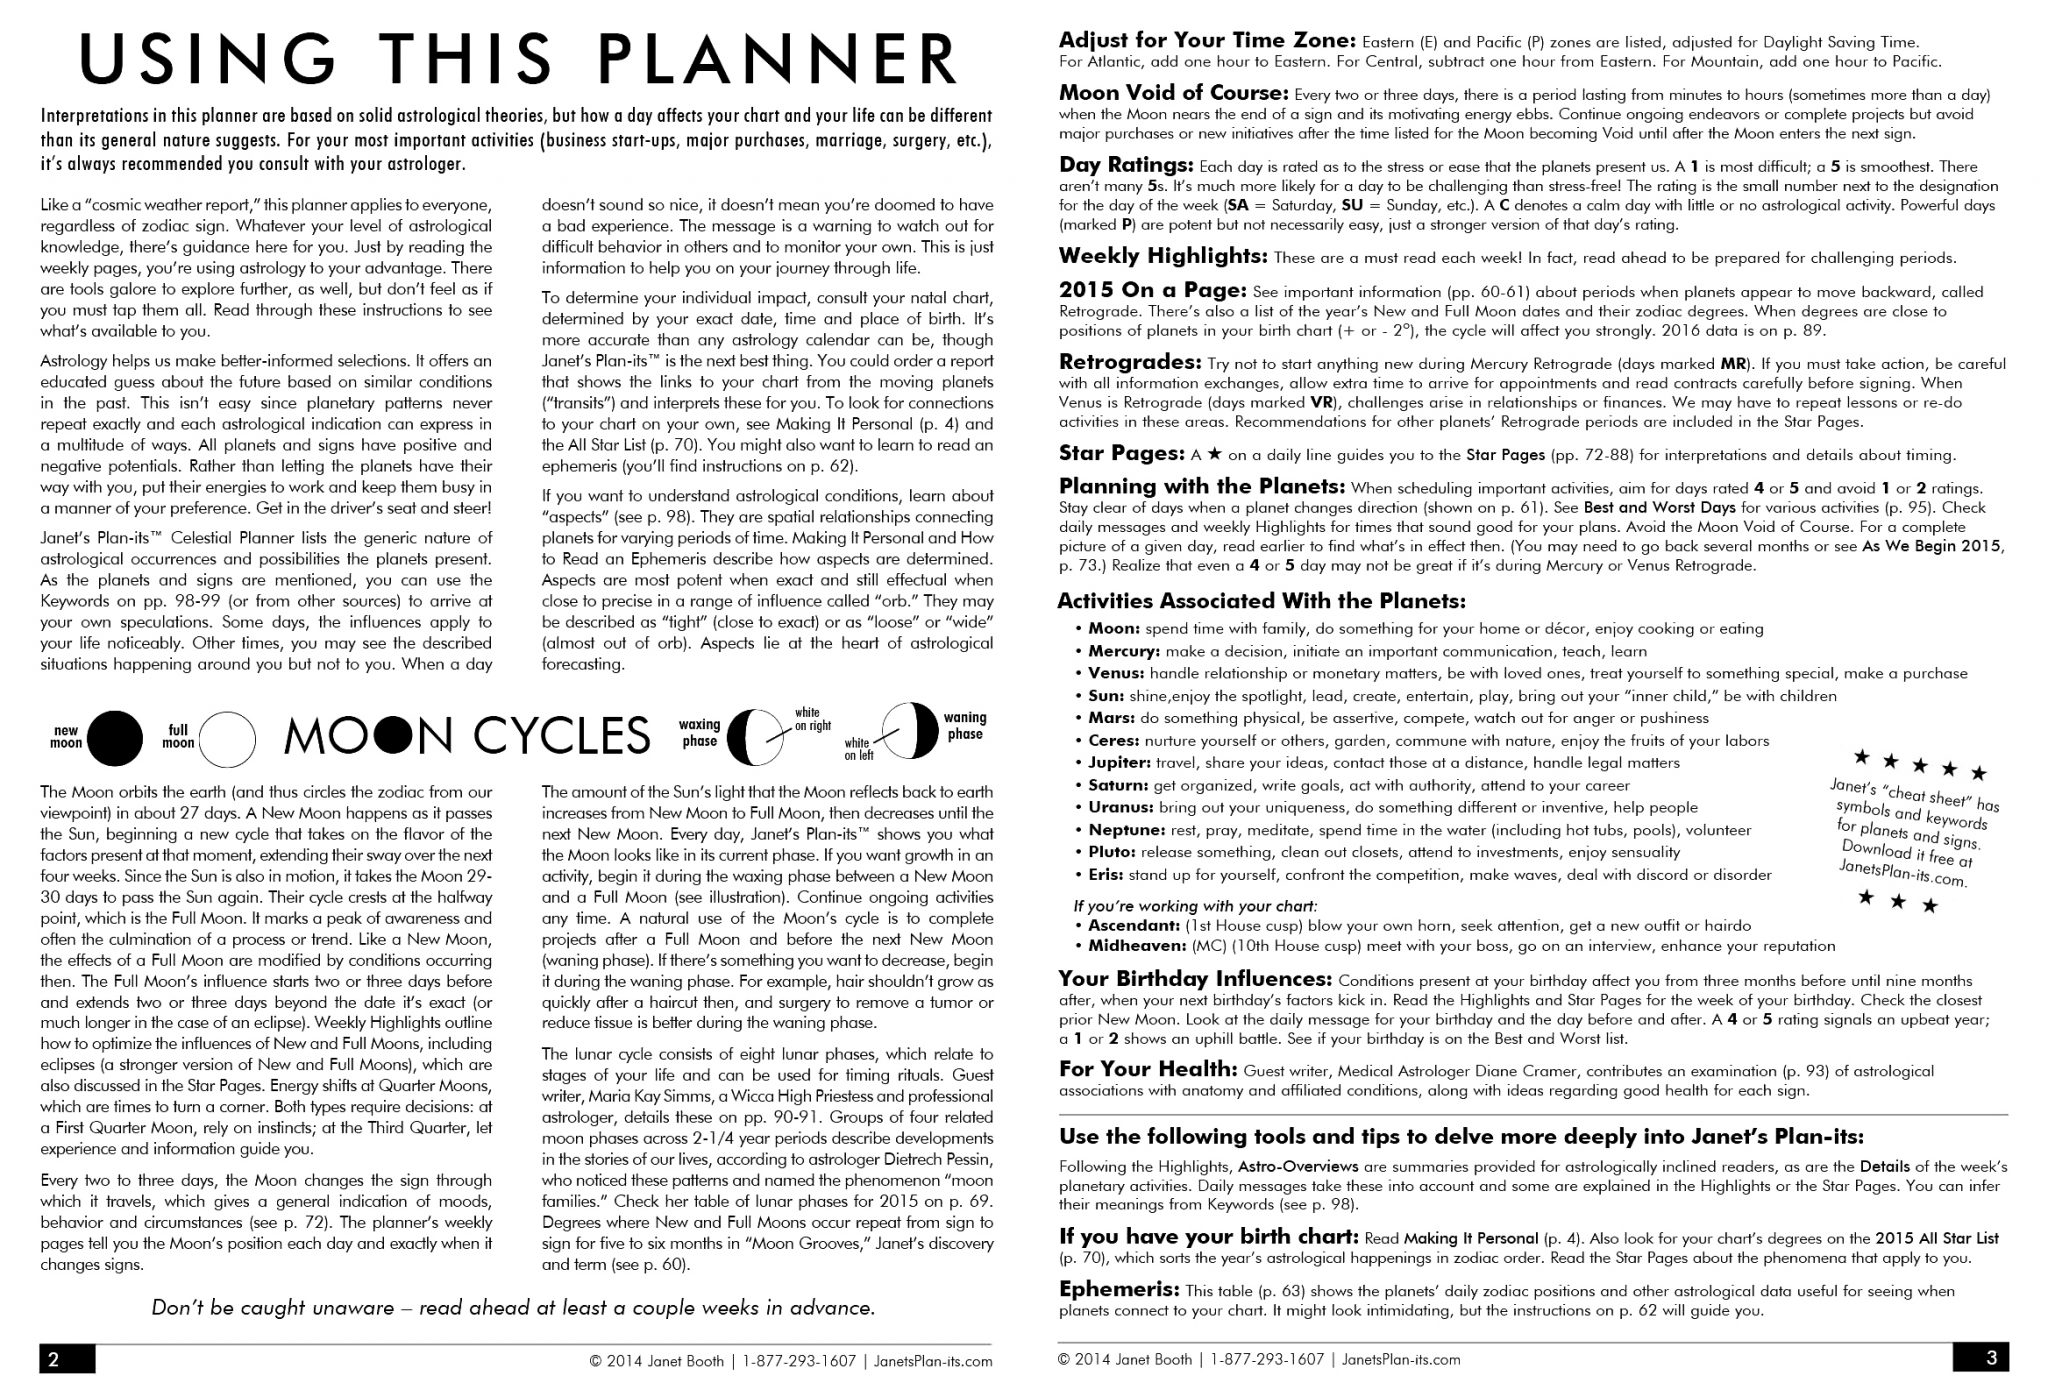 Janets Plan Its Celestial Planner